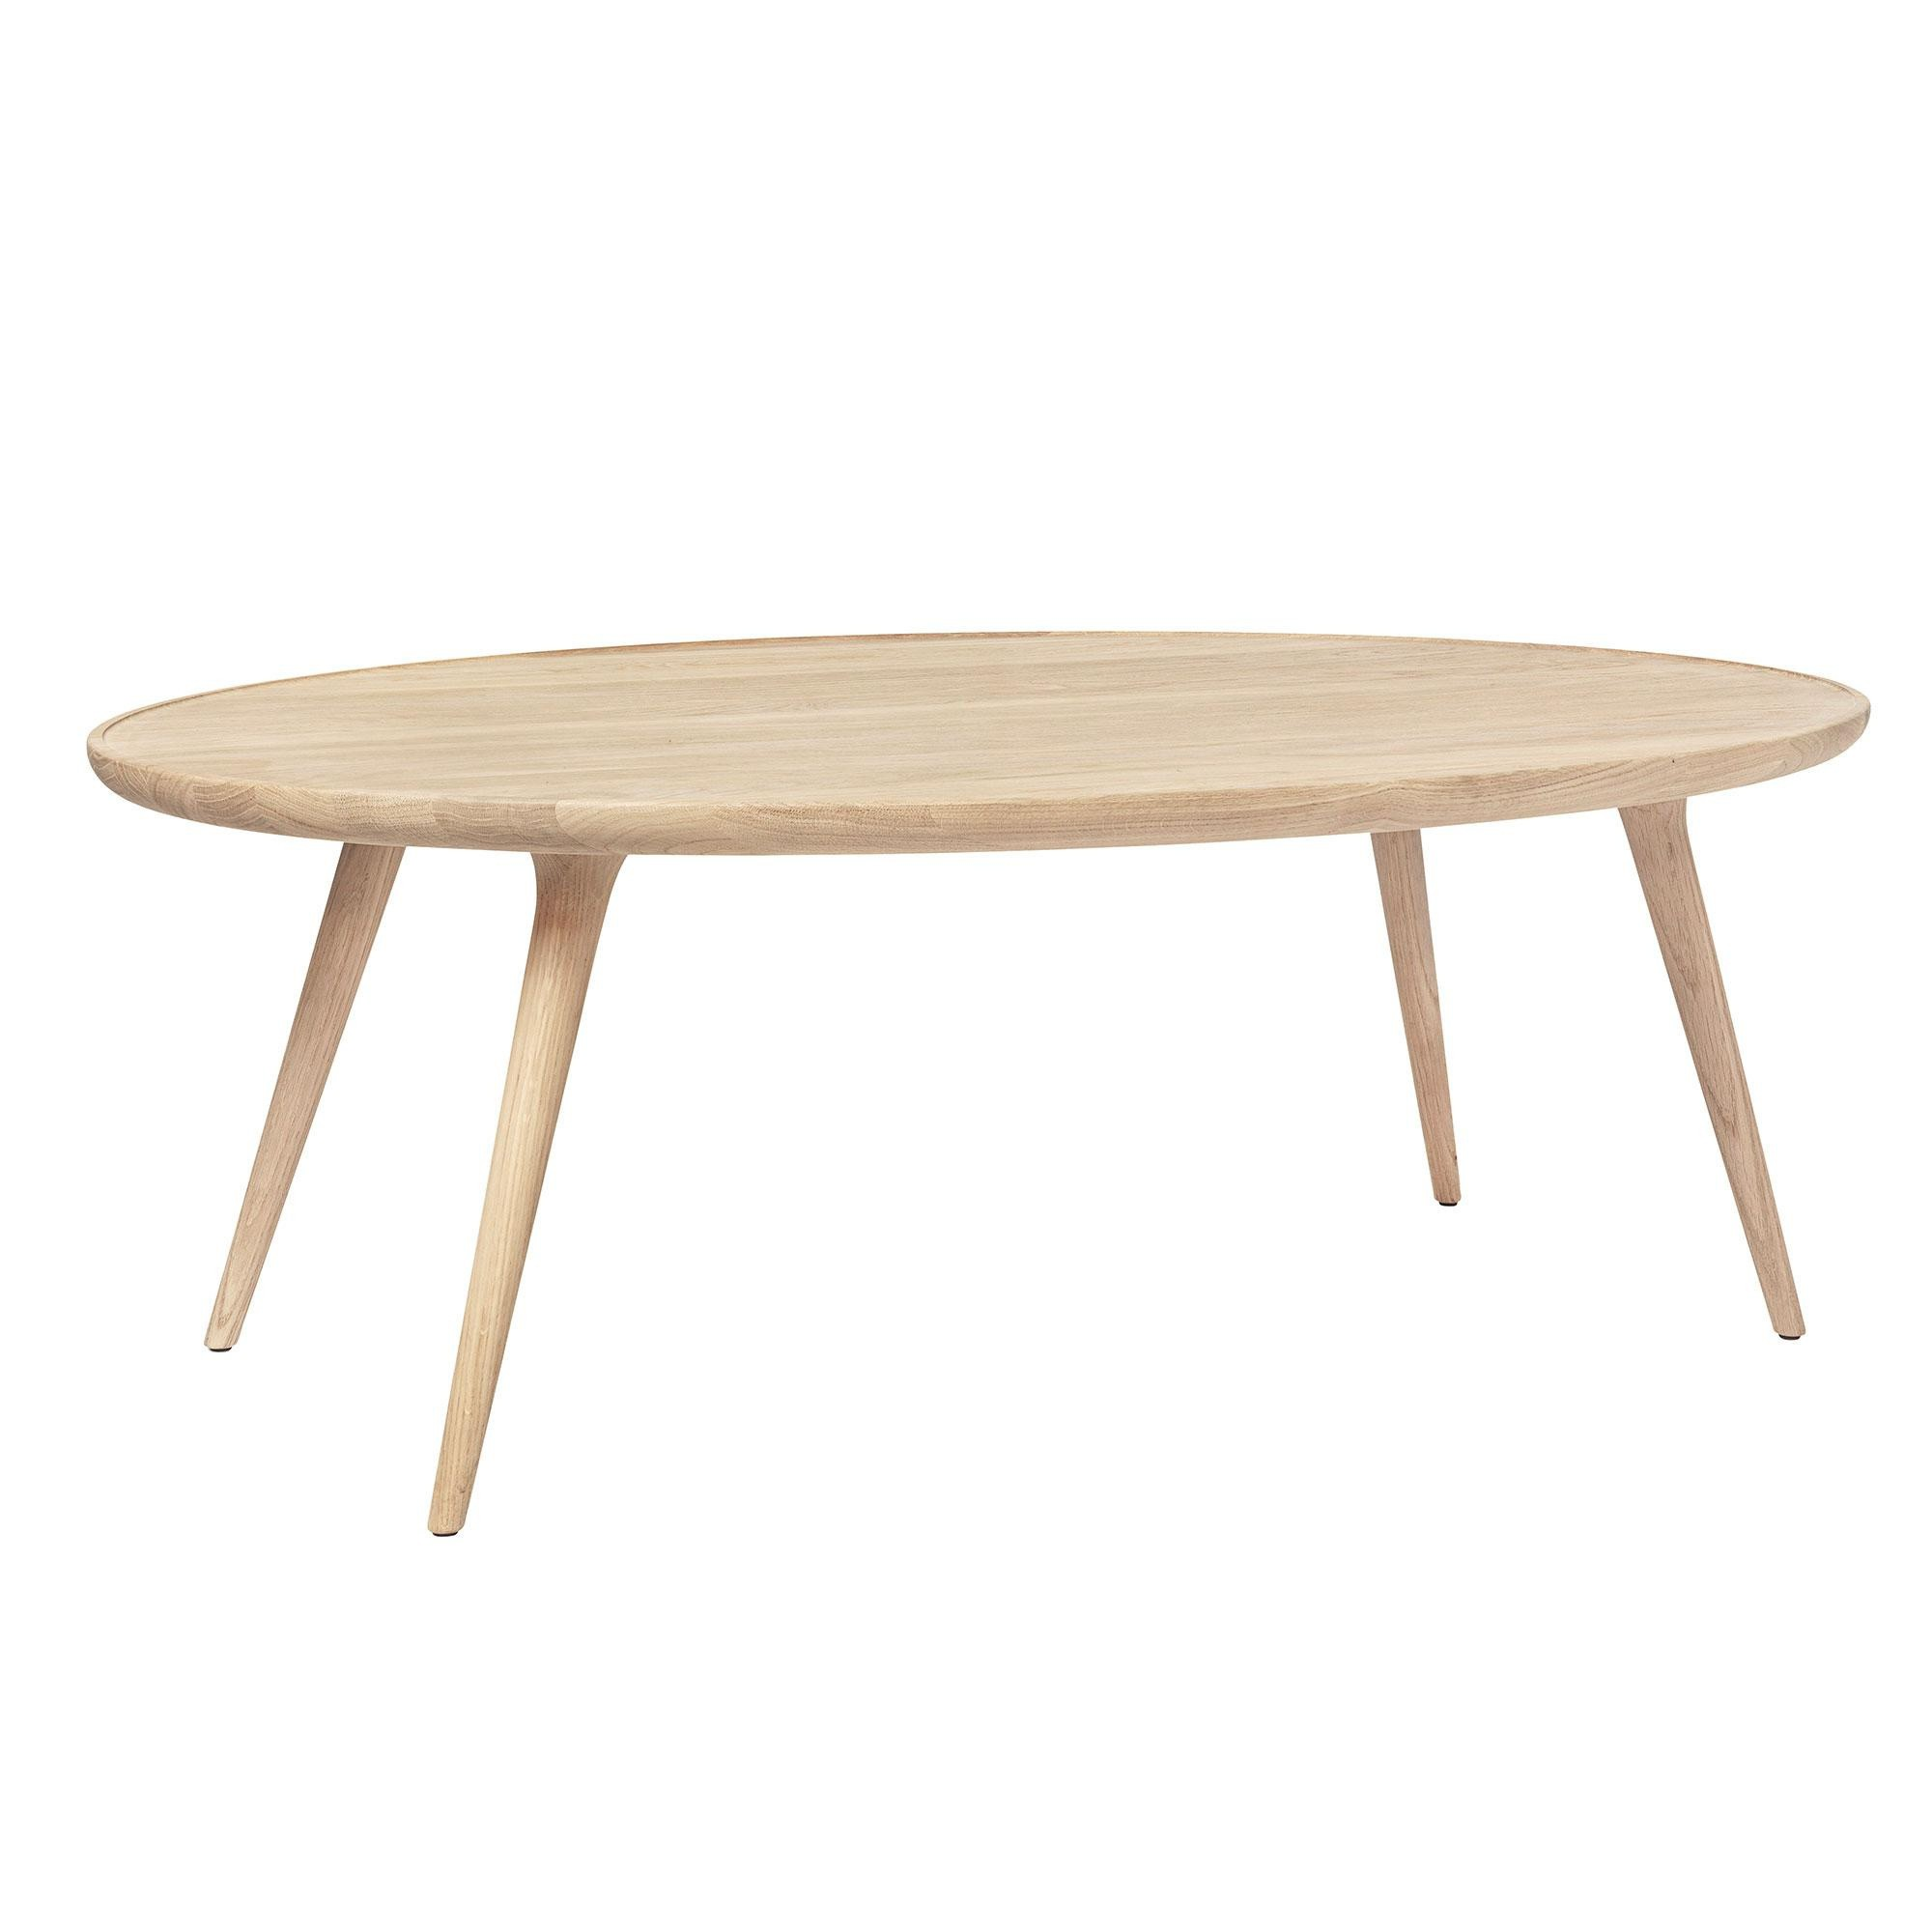 - Mater Accent Lounge Table Oval AmbienteDirect